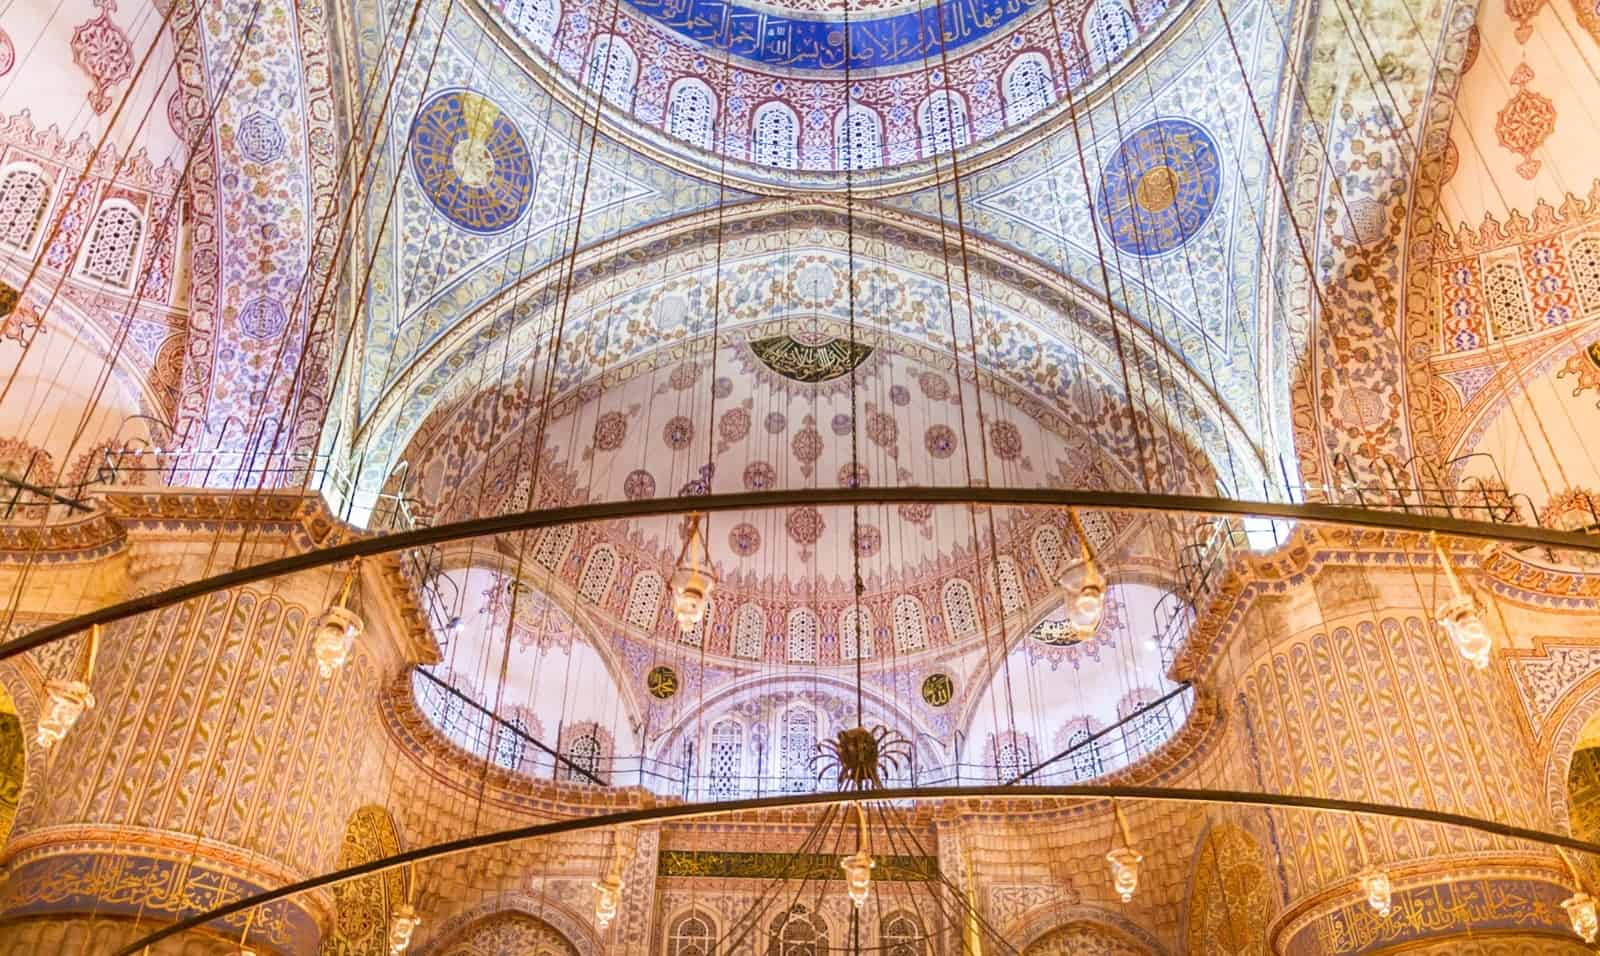 Interior-of-the-Sultanahmet-Mosque-copy-e1449243520468